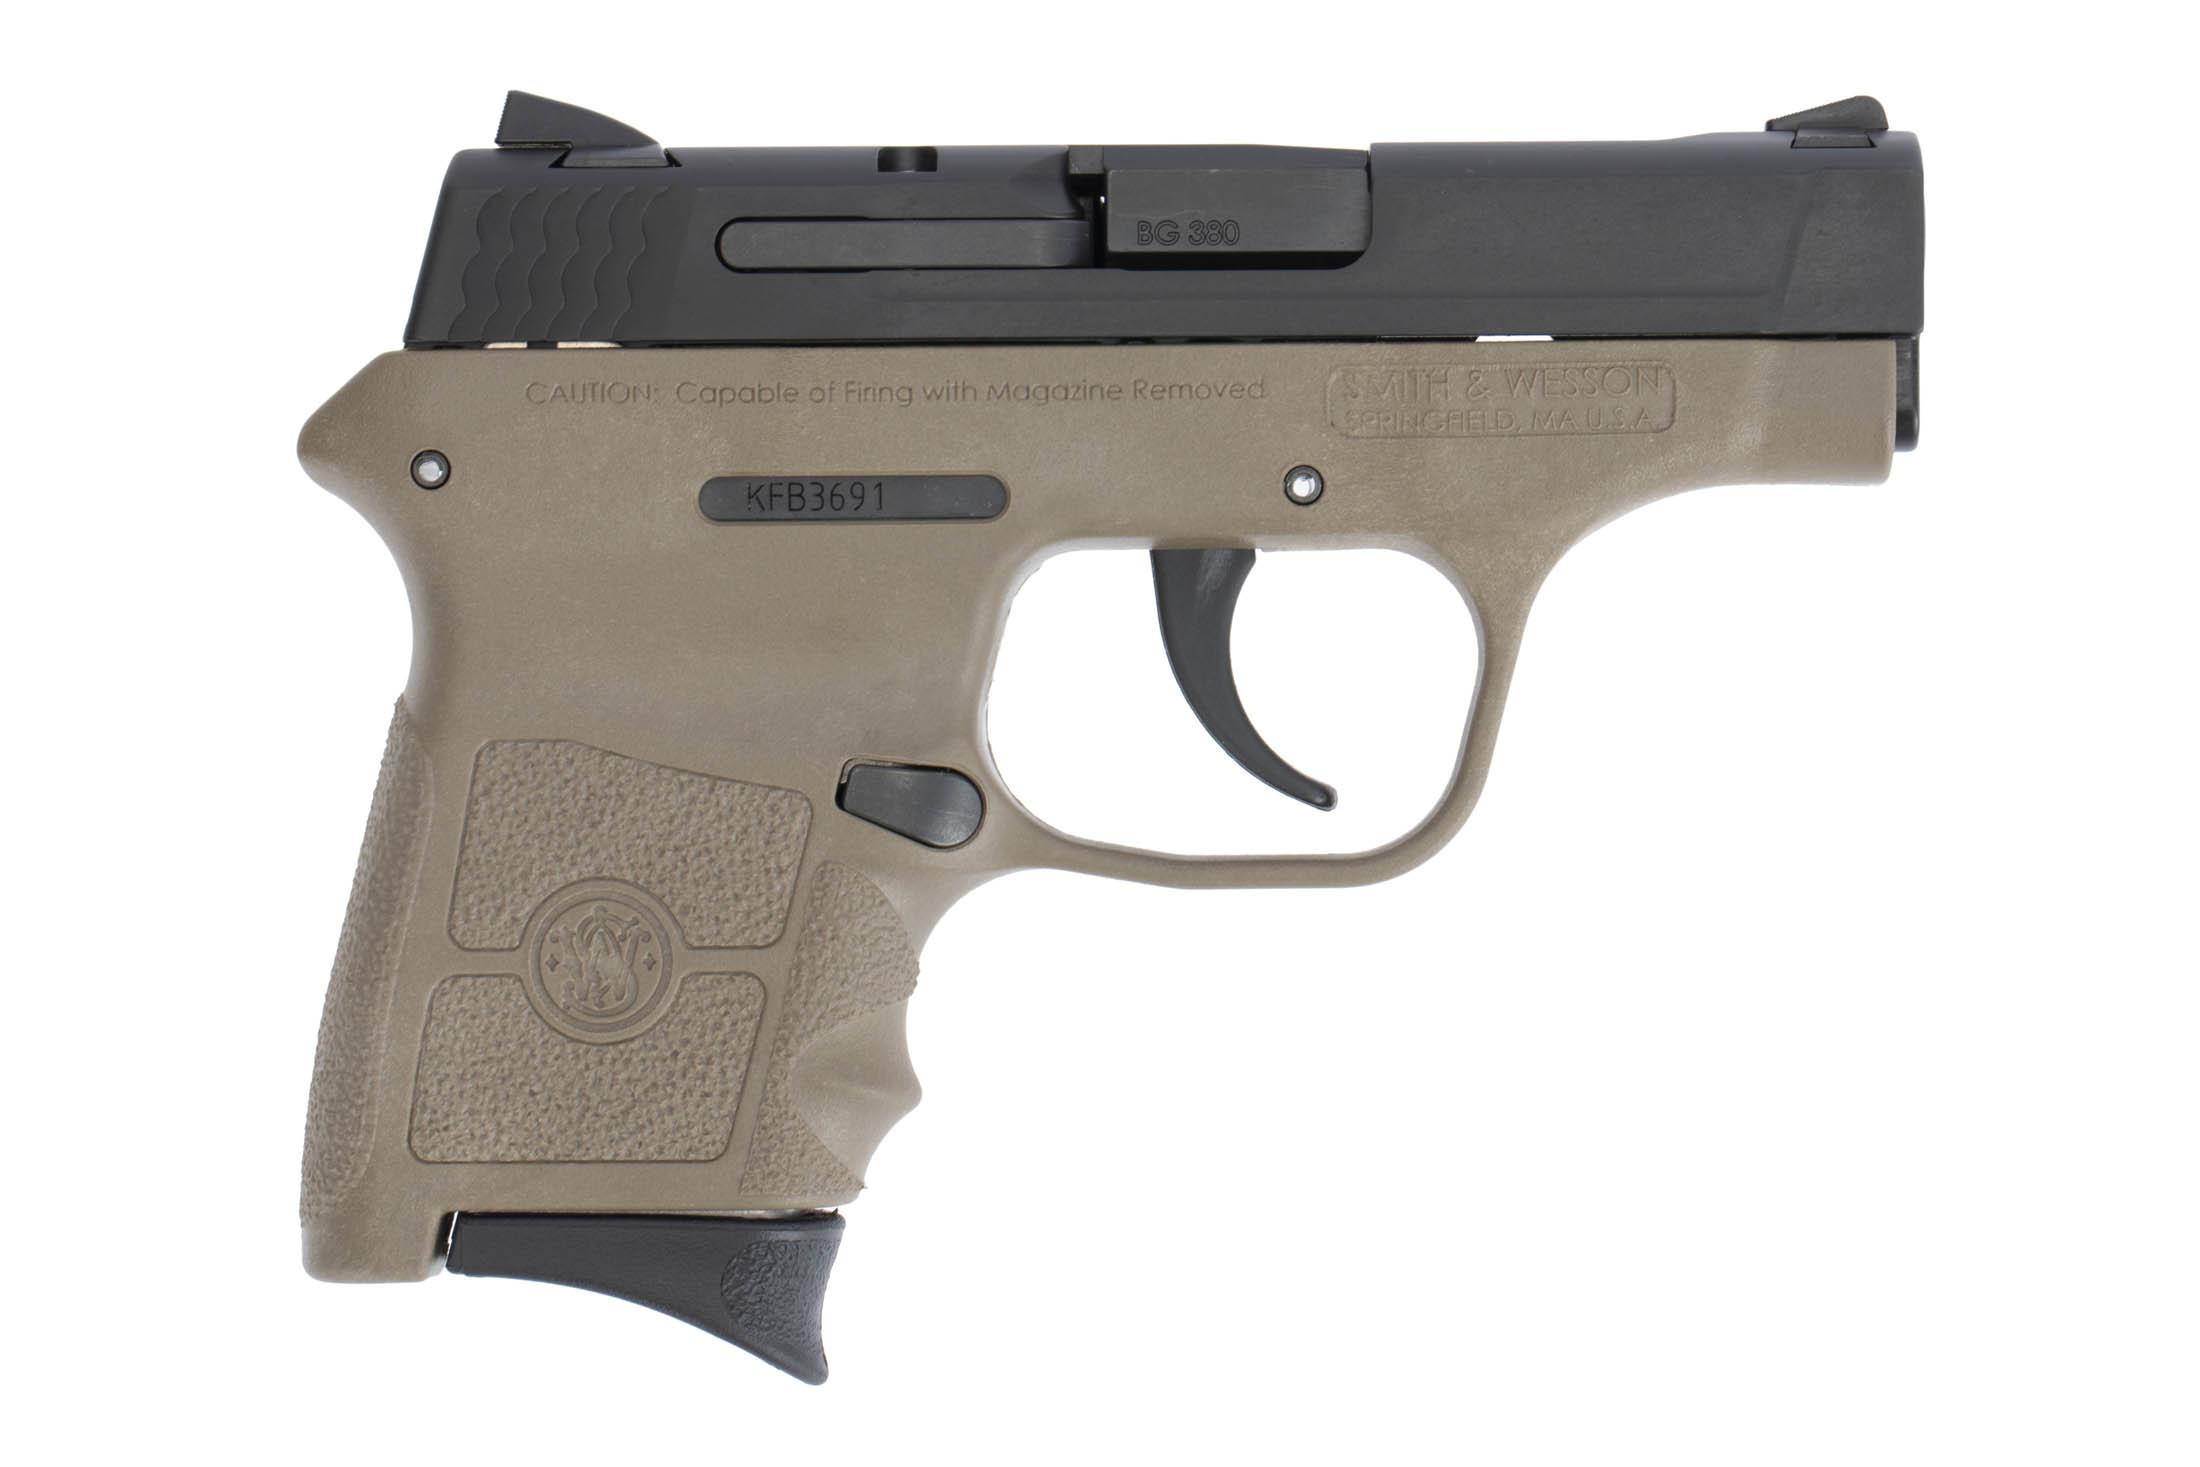 The Smith & Wesson M&P Bodyguard is a .380 ACP Sub Compact 6 round handgun that is designed for concealed carry